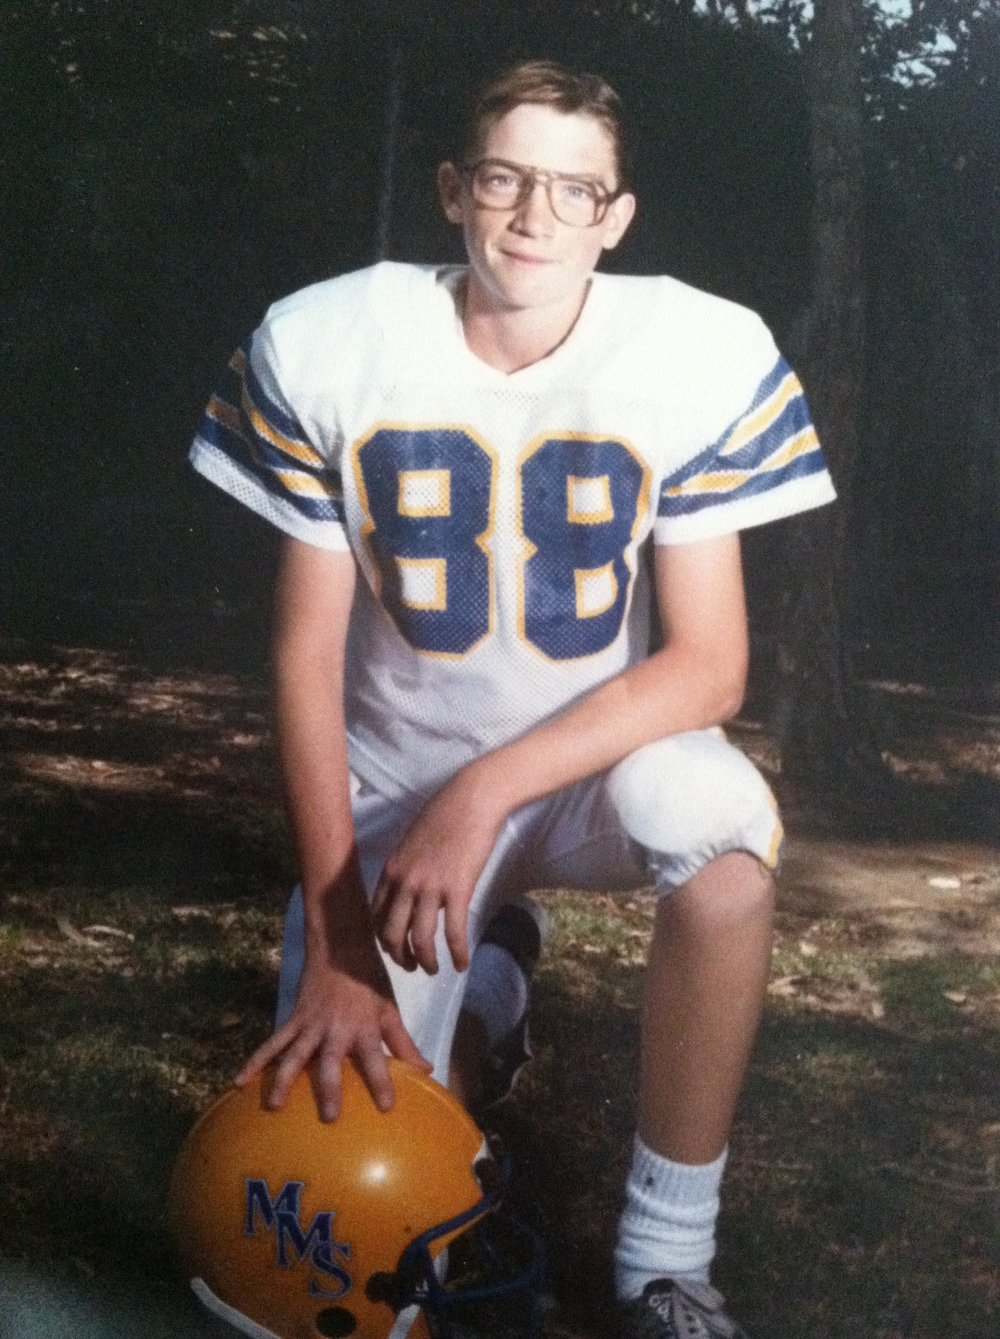 First year playing football at 12 years old. (I can't believe i shared this!)